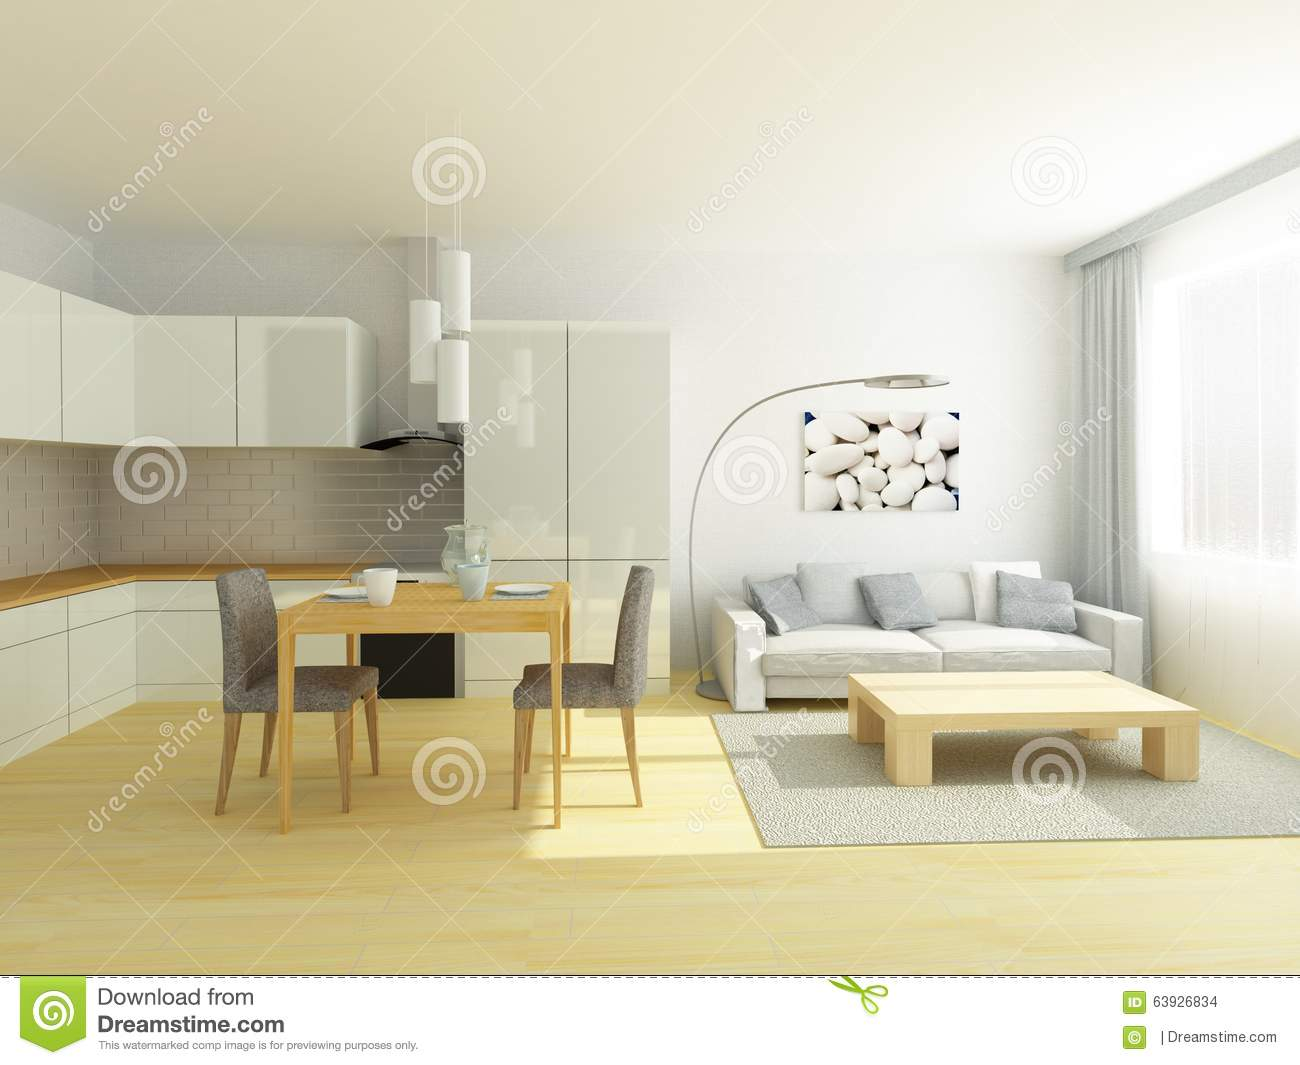 Small Flat Kitchen Small Flat Studio Room Kitchen And Sitting Room In Light Gray